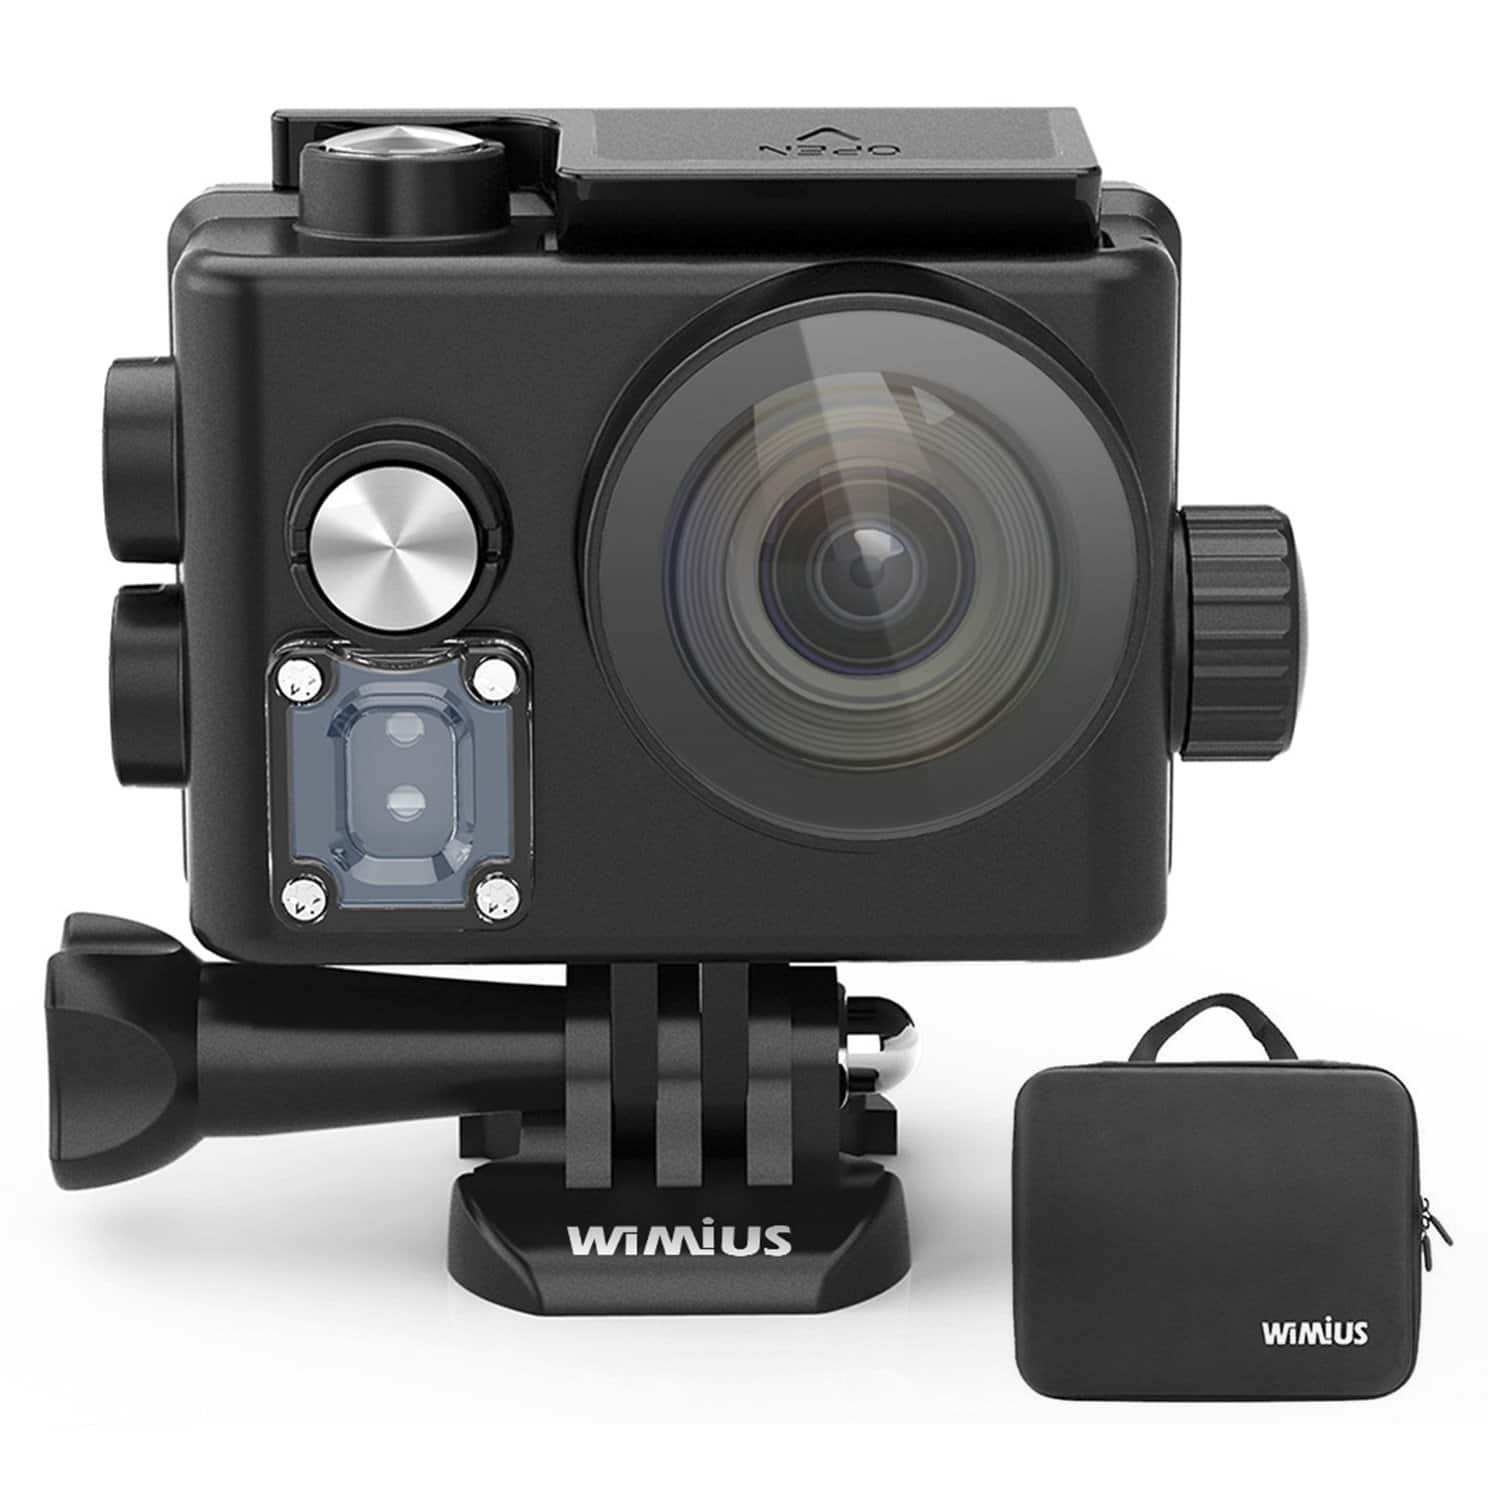 WiMiUS L2 Underwater Action Camera 4K Sports HD Helmet Camera at $62.99 @Amazon Free Shipping